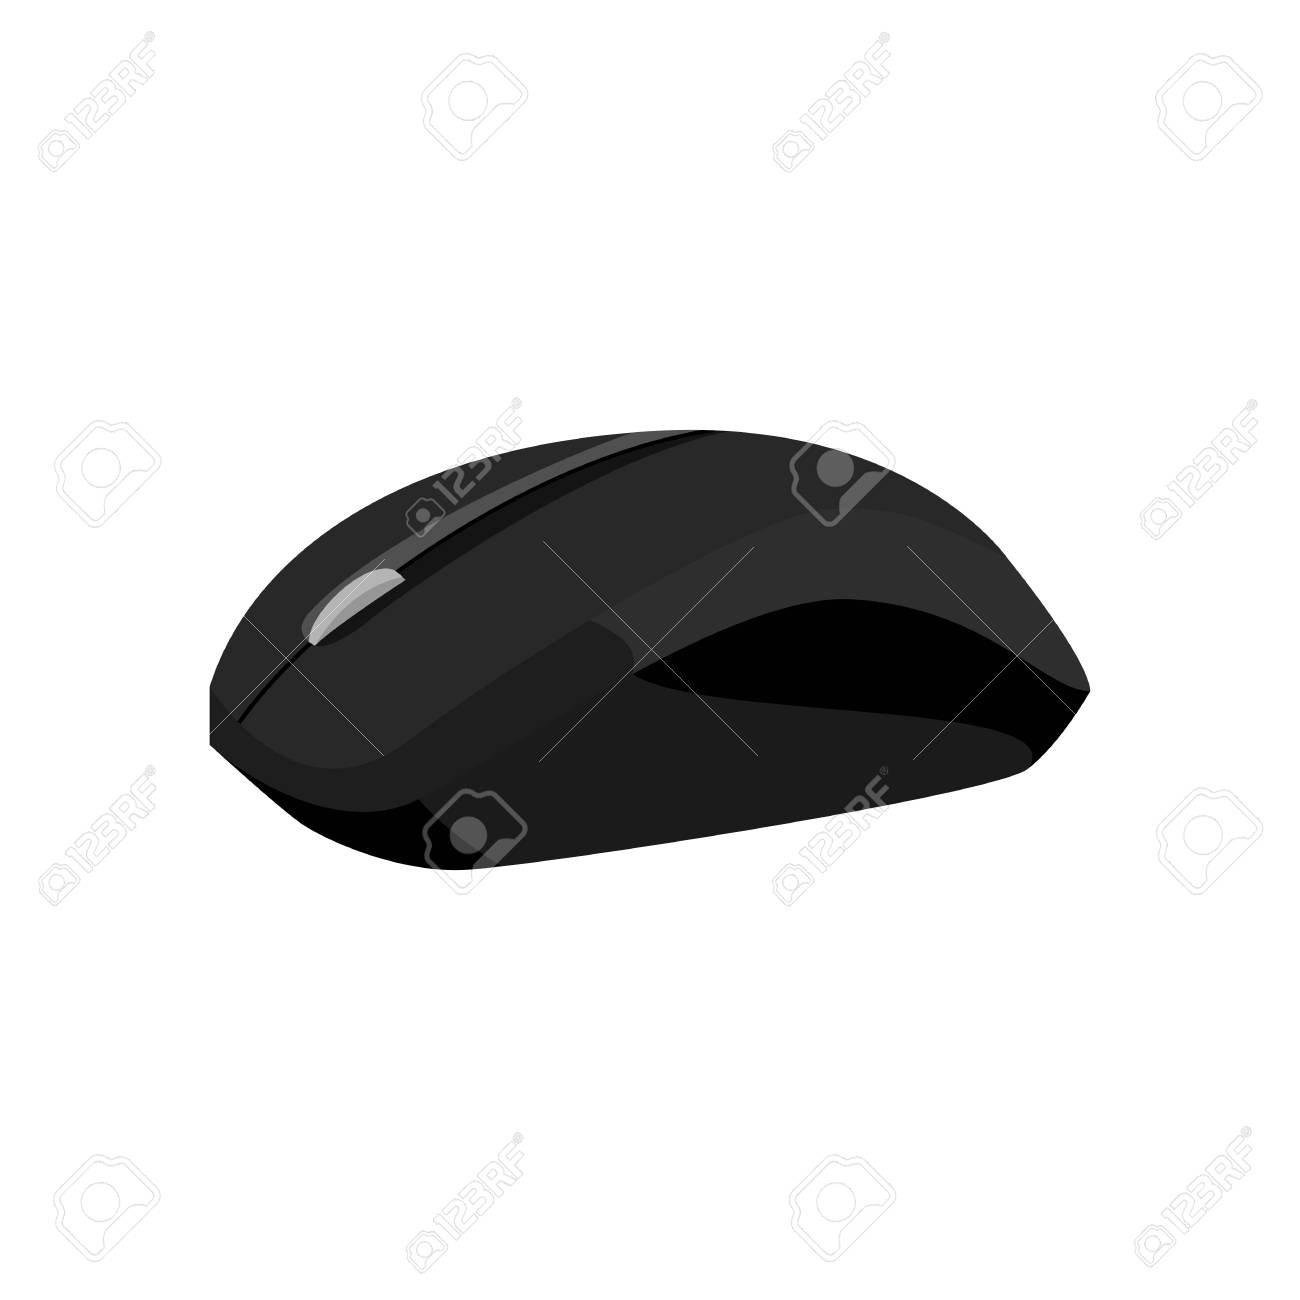 Wireless Mouse Icon In Black Monochrome Style Isolated On White ...